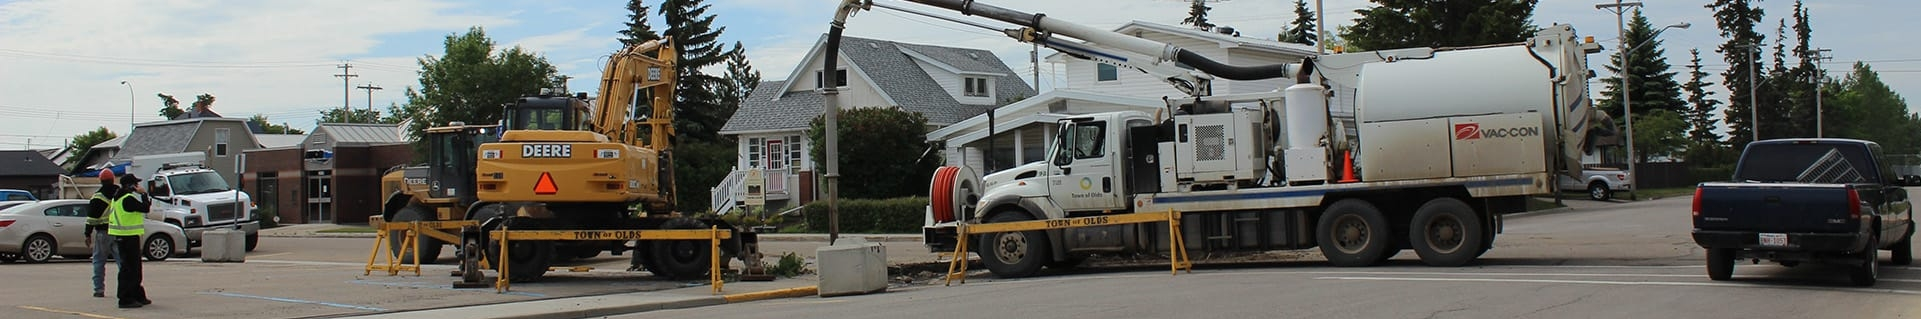 Large trucks on a residential street with a construction zone blocked off